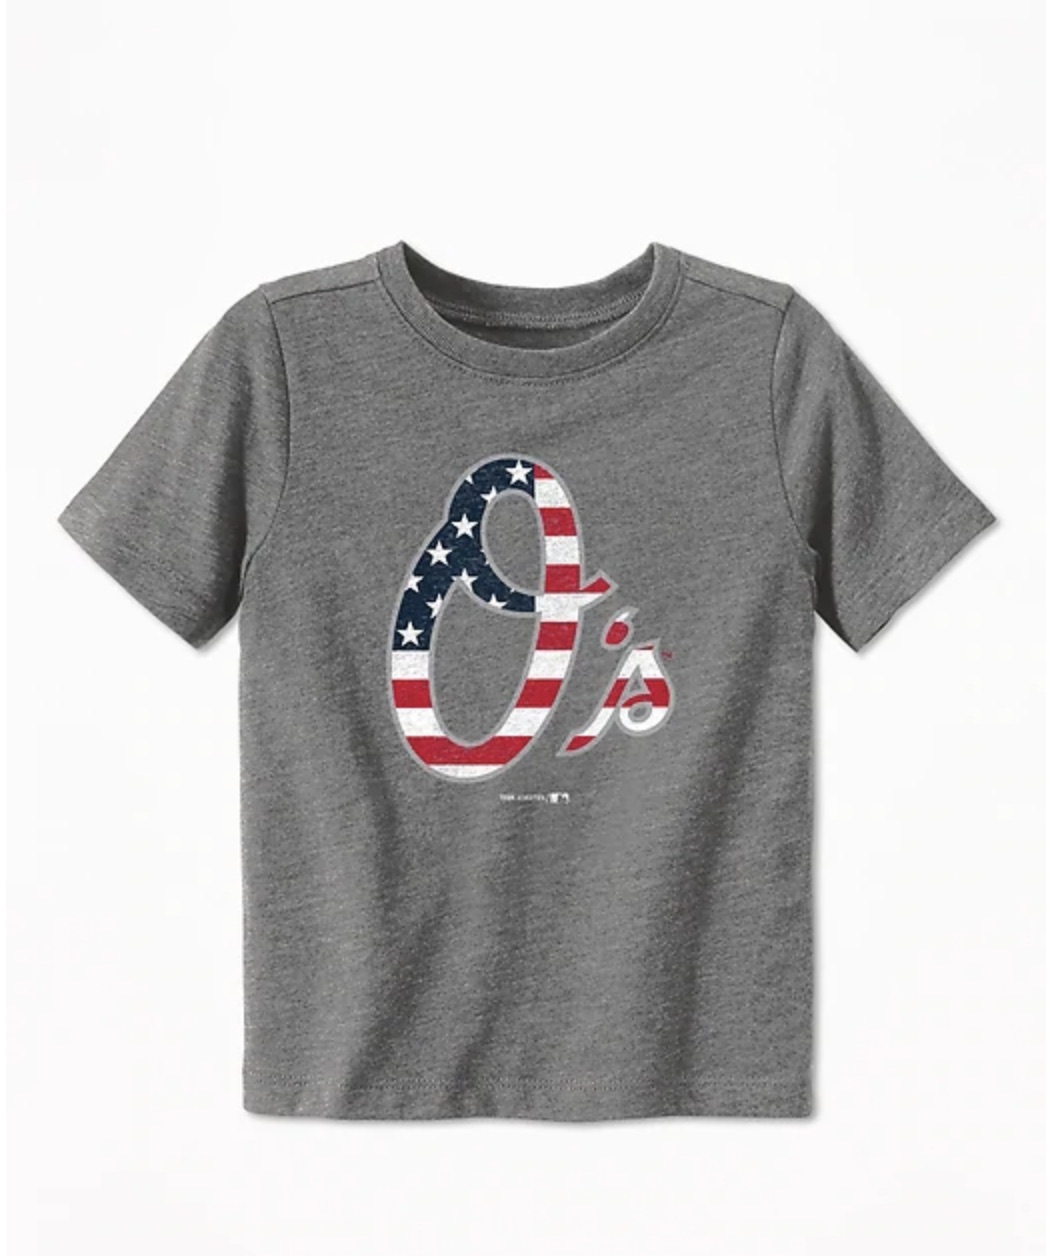 Cool gifts for kids under $15: Americana MLB t-shirt in choice of teams